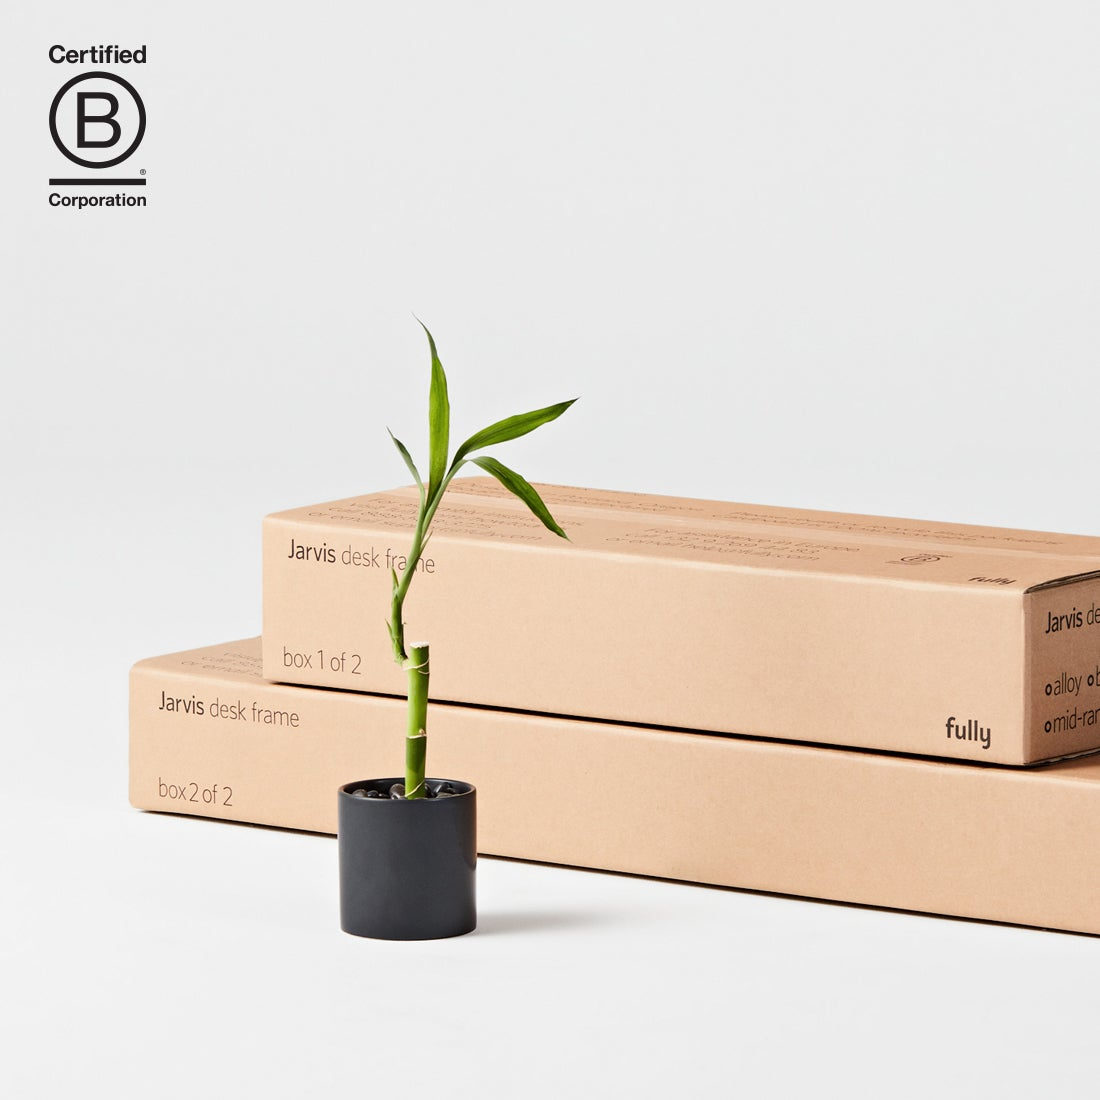 Fully B Corp certified and Jarvis standing desk boxes